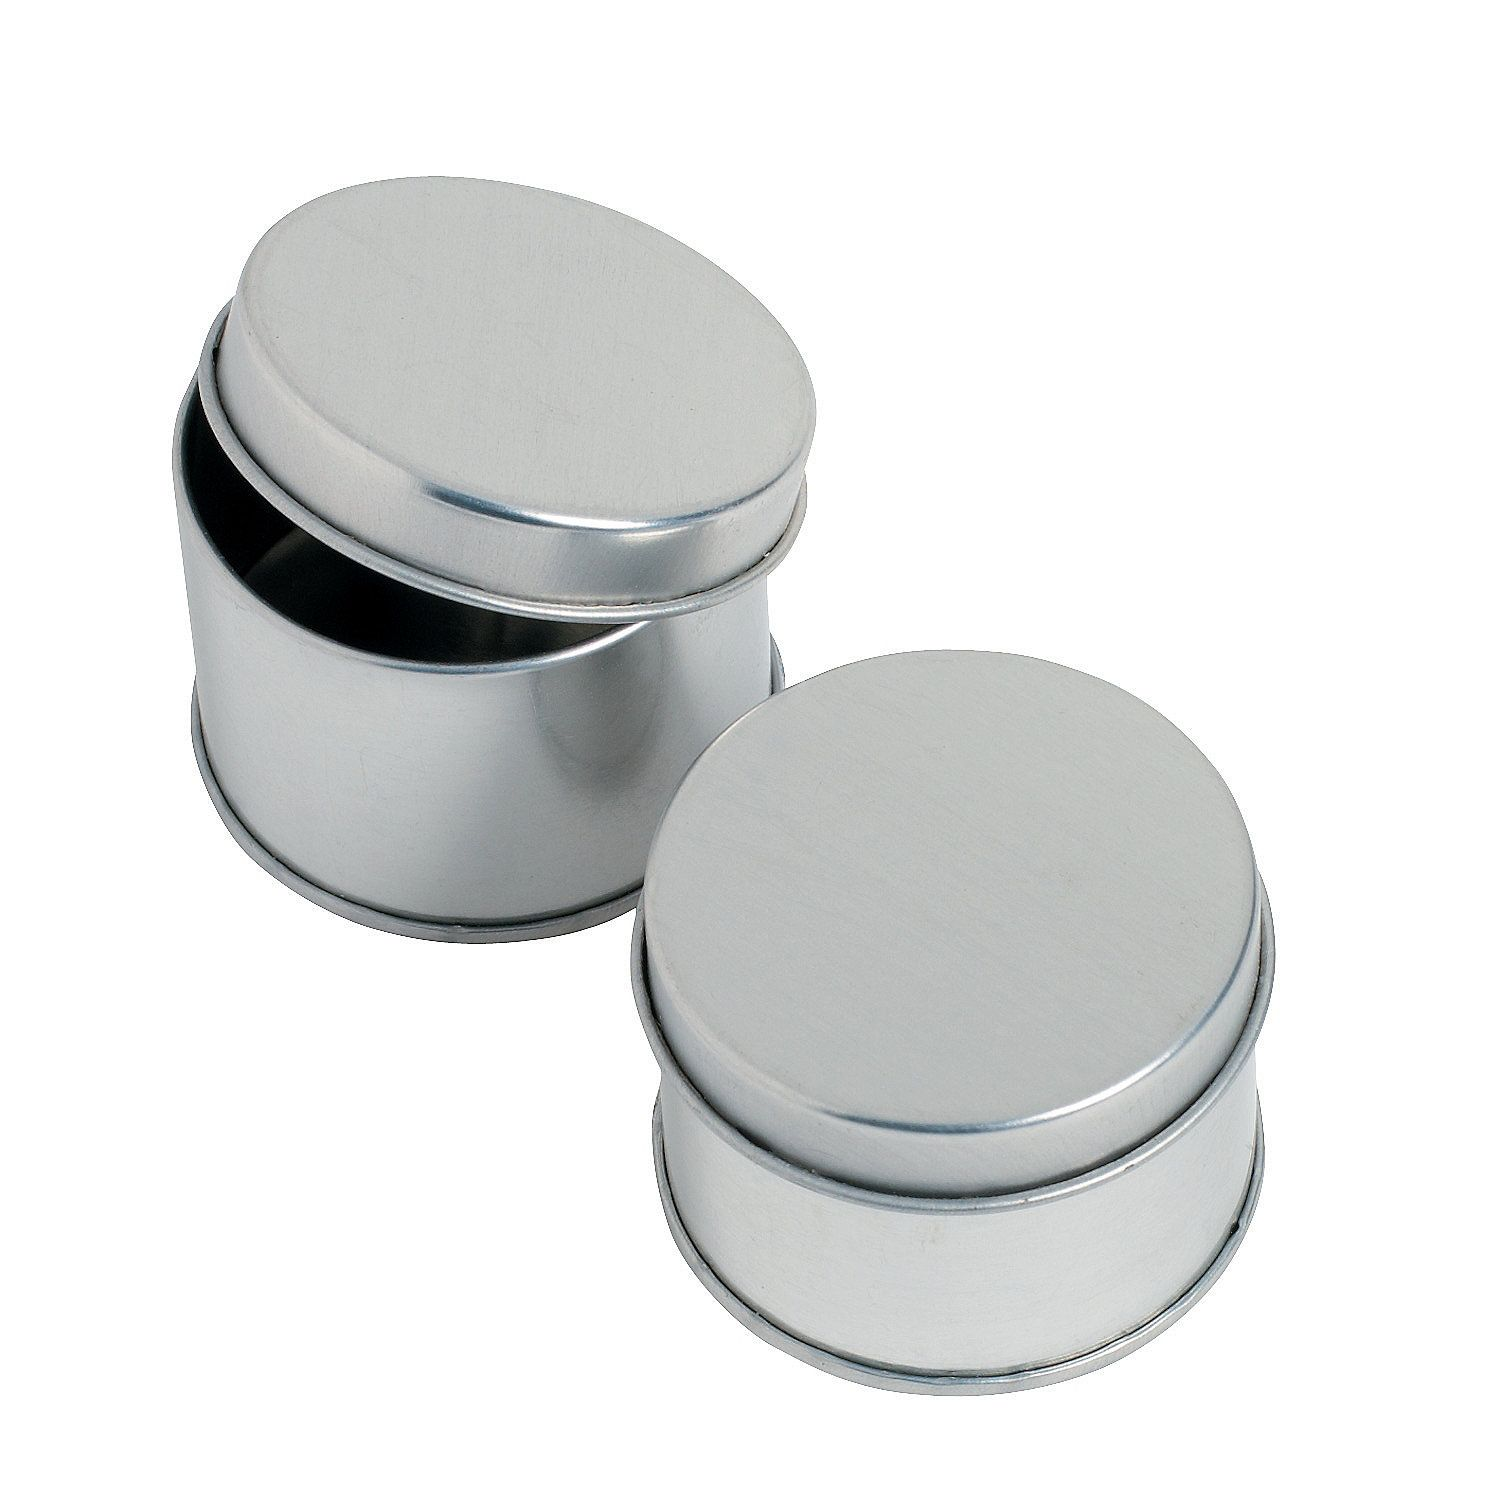 Round Silvertone Tins Favor Containers | Favors, Wedding and Bridal ...